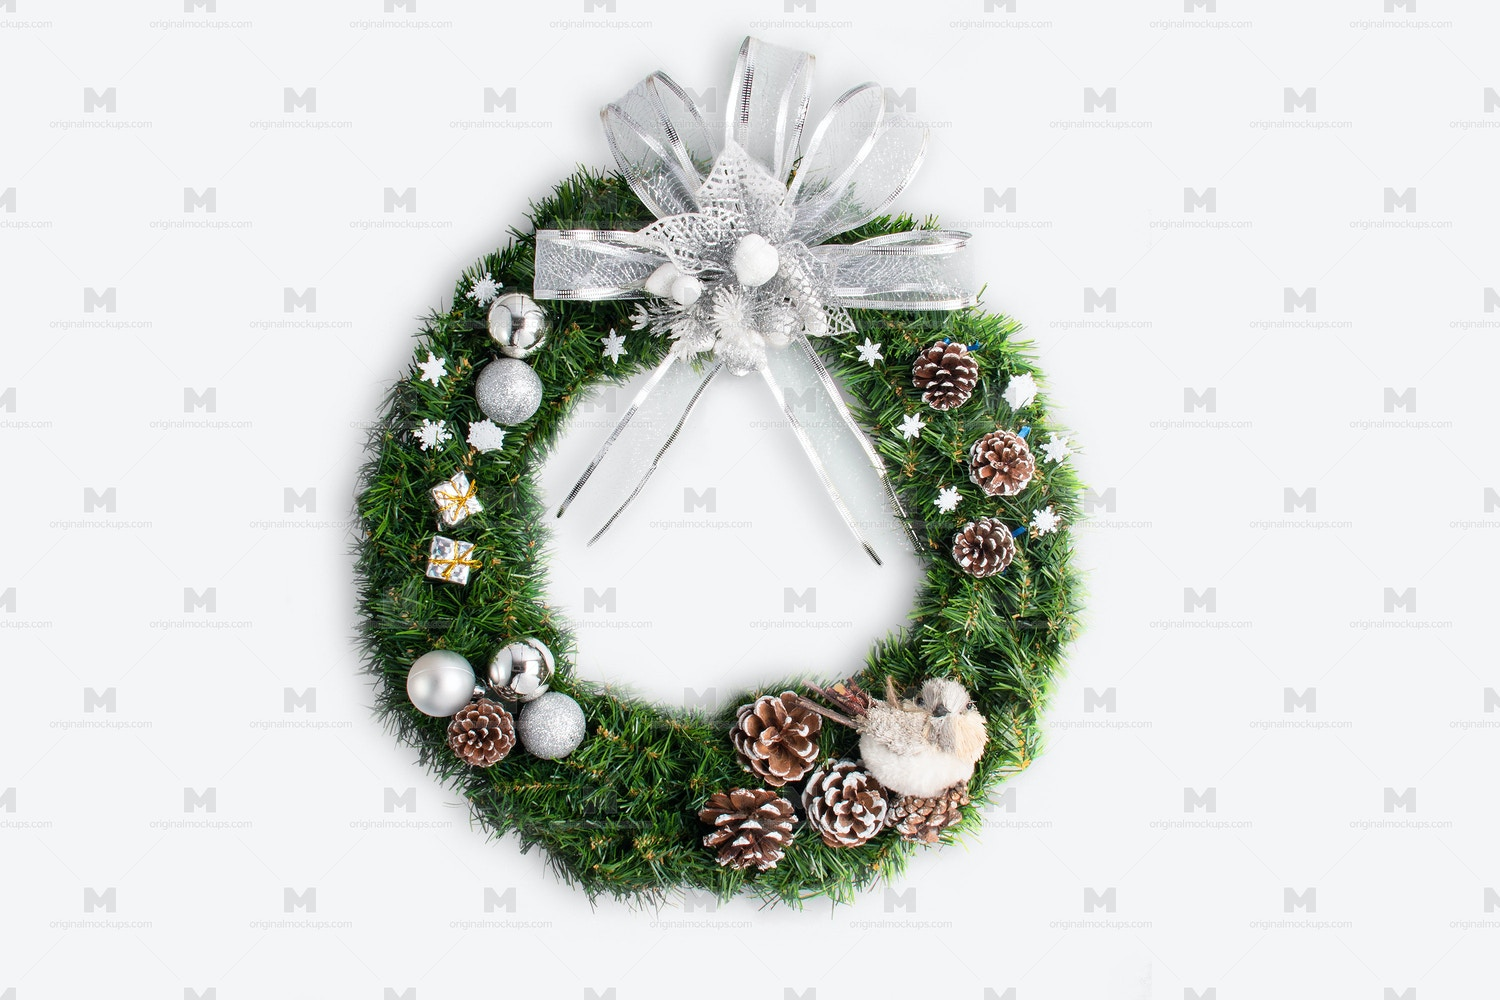 Christmas Wreath Isolate 02 por Original Mockups en Original Mockups